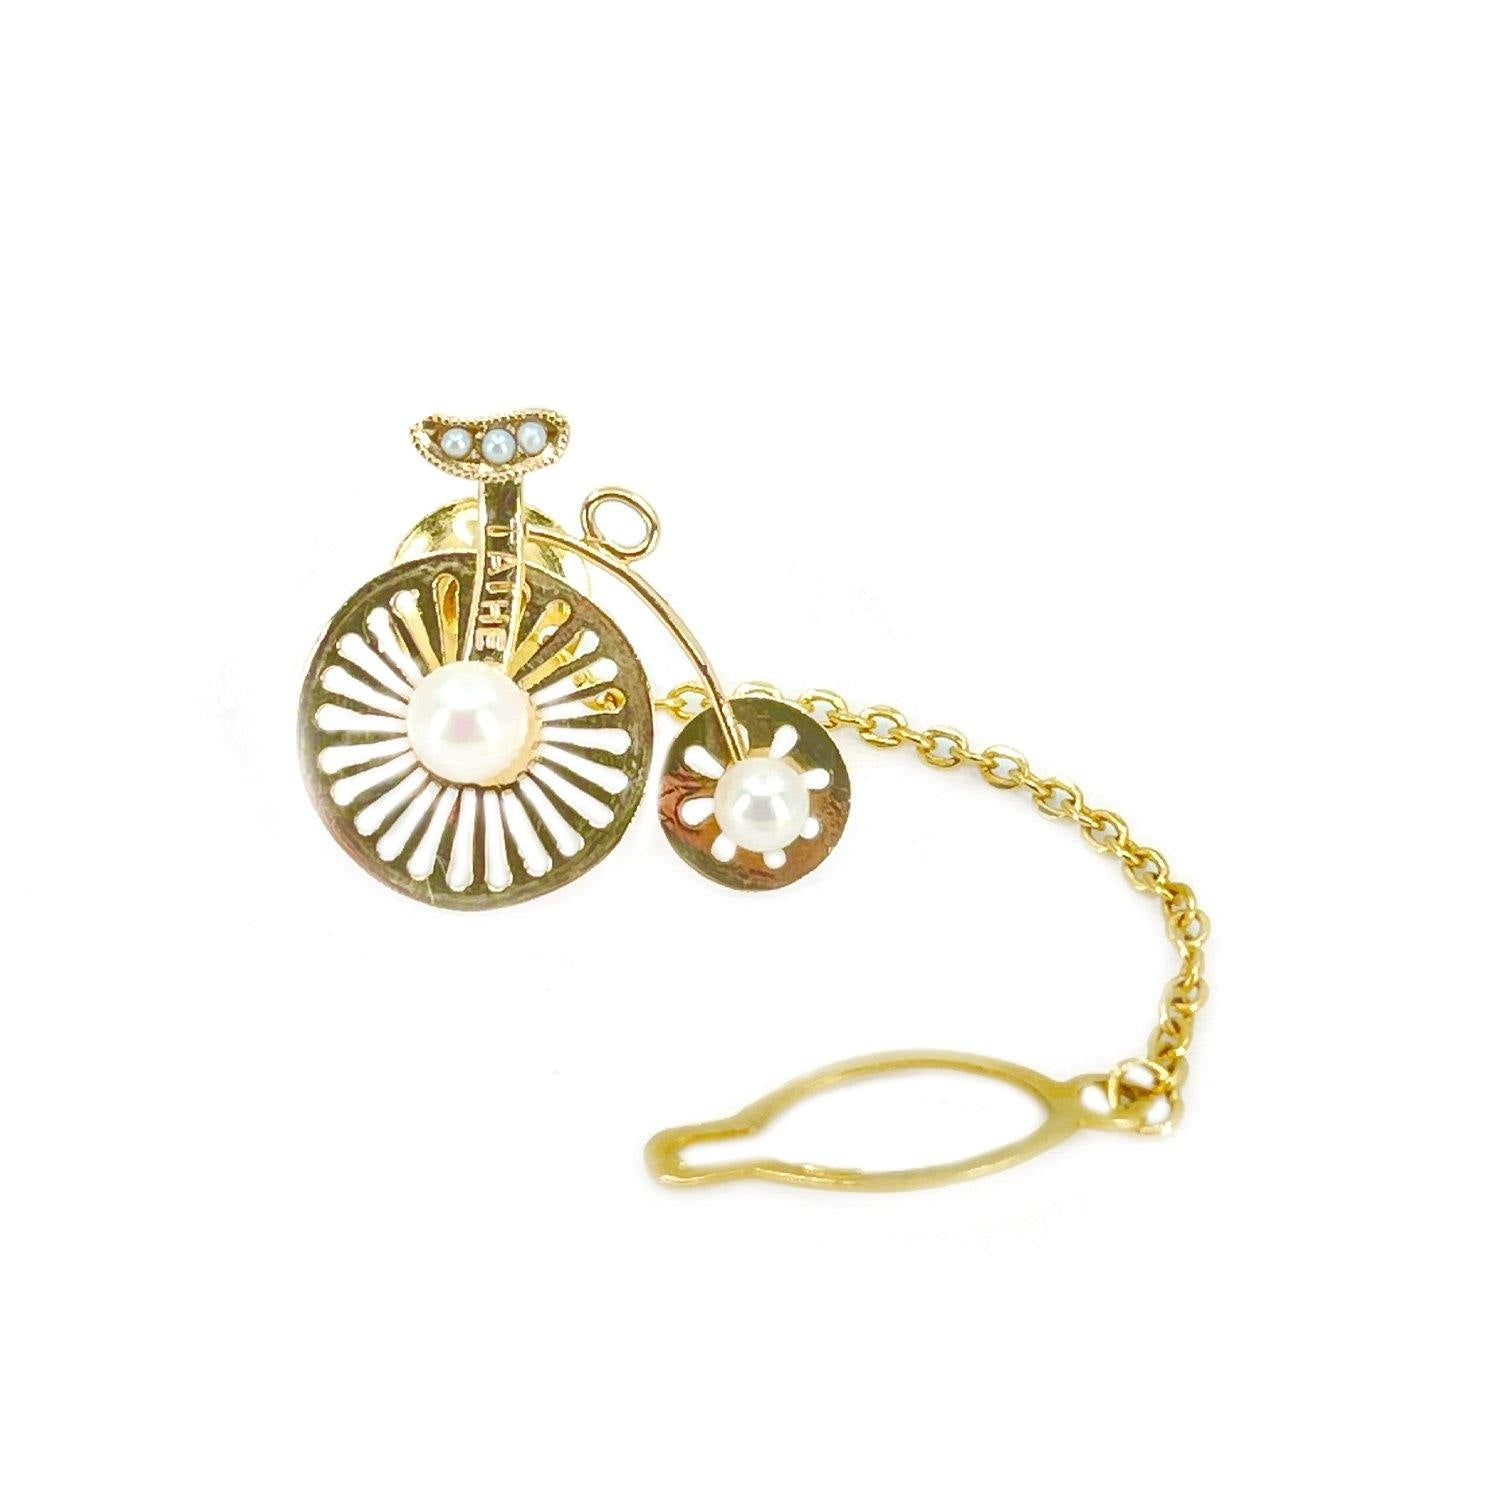 Taihei Bicycle Retro Japanese Saltwater Akoya Cultured Pearl Tie Tac- 18K Yellow Gold